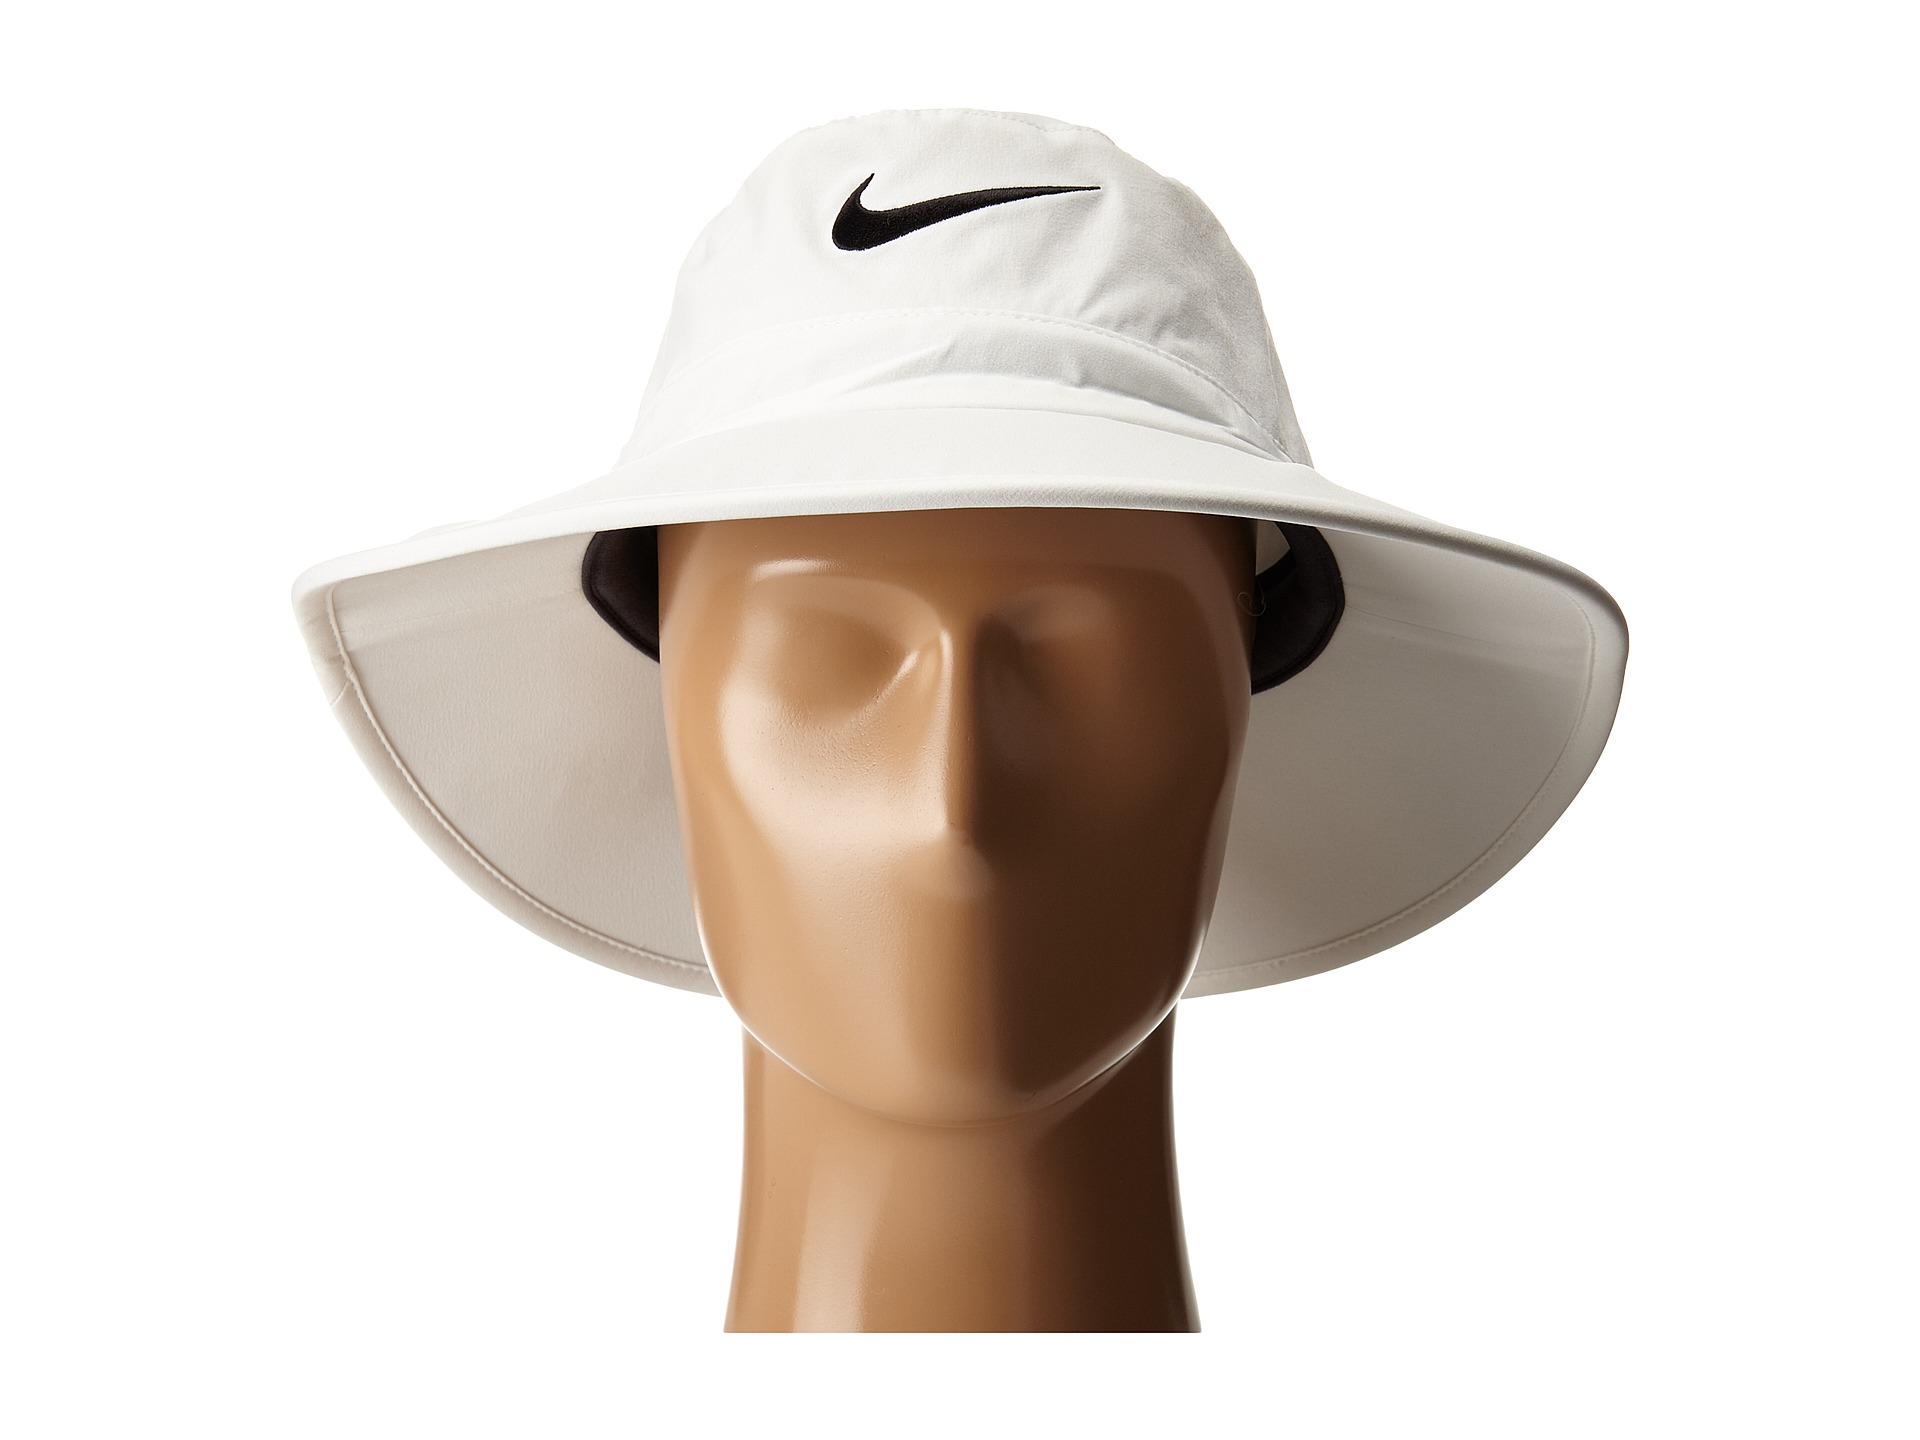 Lyst - Nike Sun Protect Bucket Cap in White for Men ef0ca8d8eaf